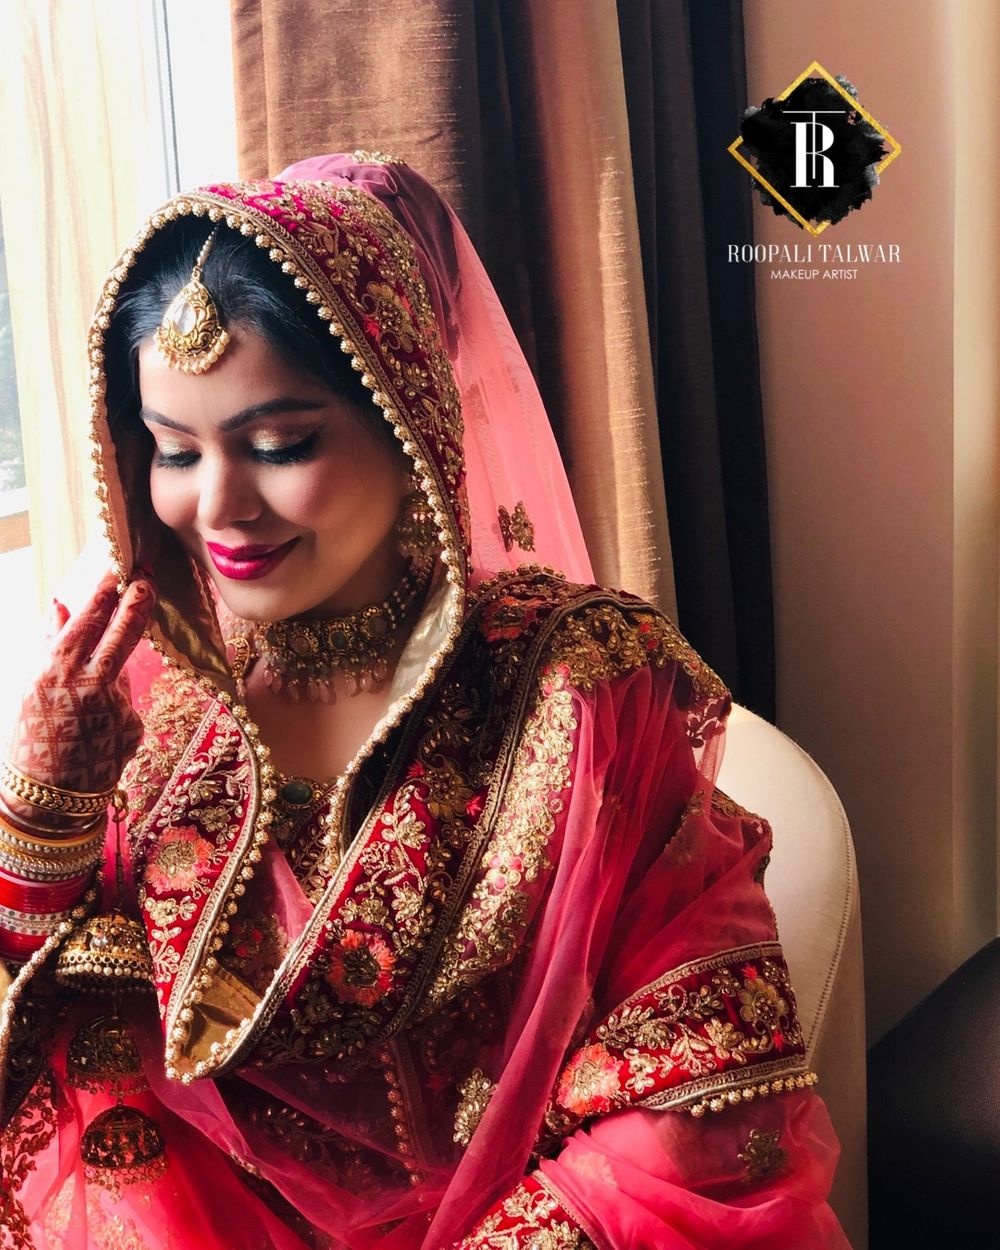 Photo From My beautiful #Sikhbride  - By Roopali Talwar Makeup Artist